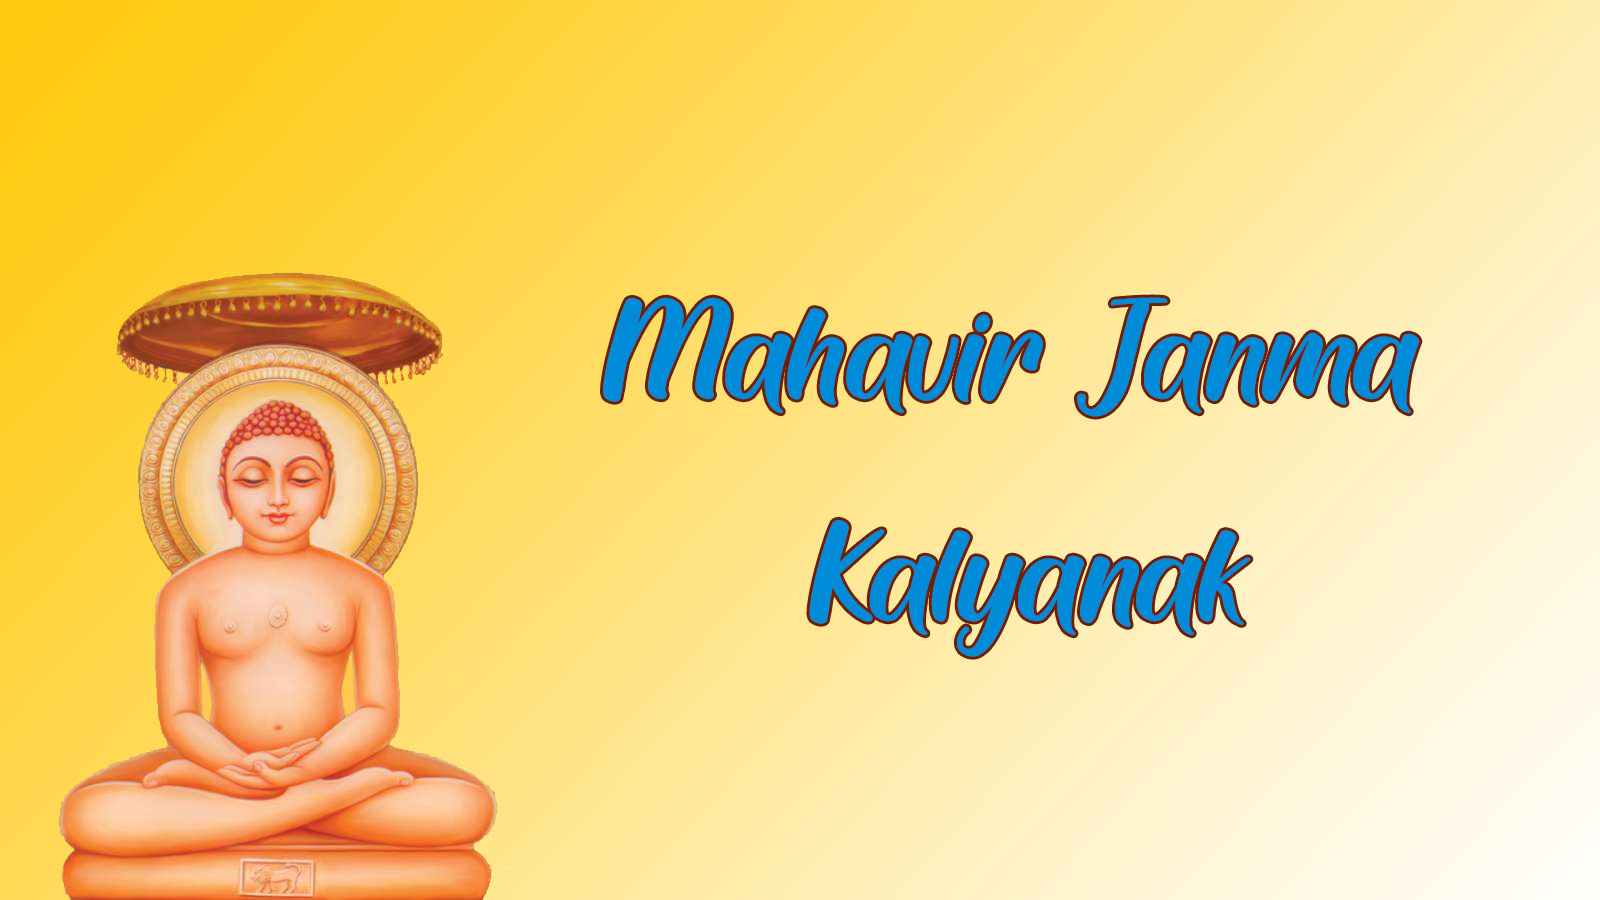 Top 10 Mahavir Jayanti Greeting Quotes Messages Pictures SMS HD Wallpapers in Hindi & English Text for facebook & Whatsapp Updates